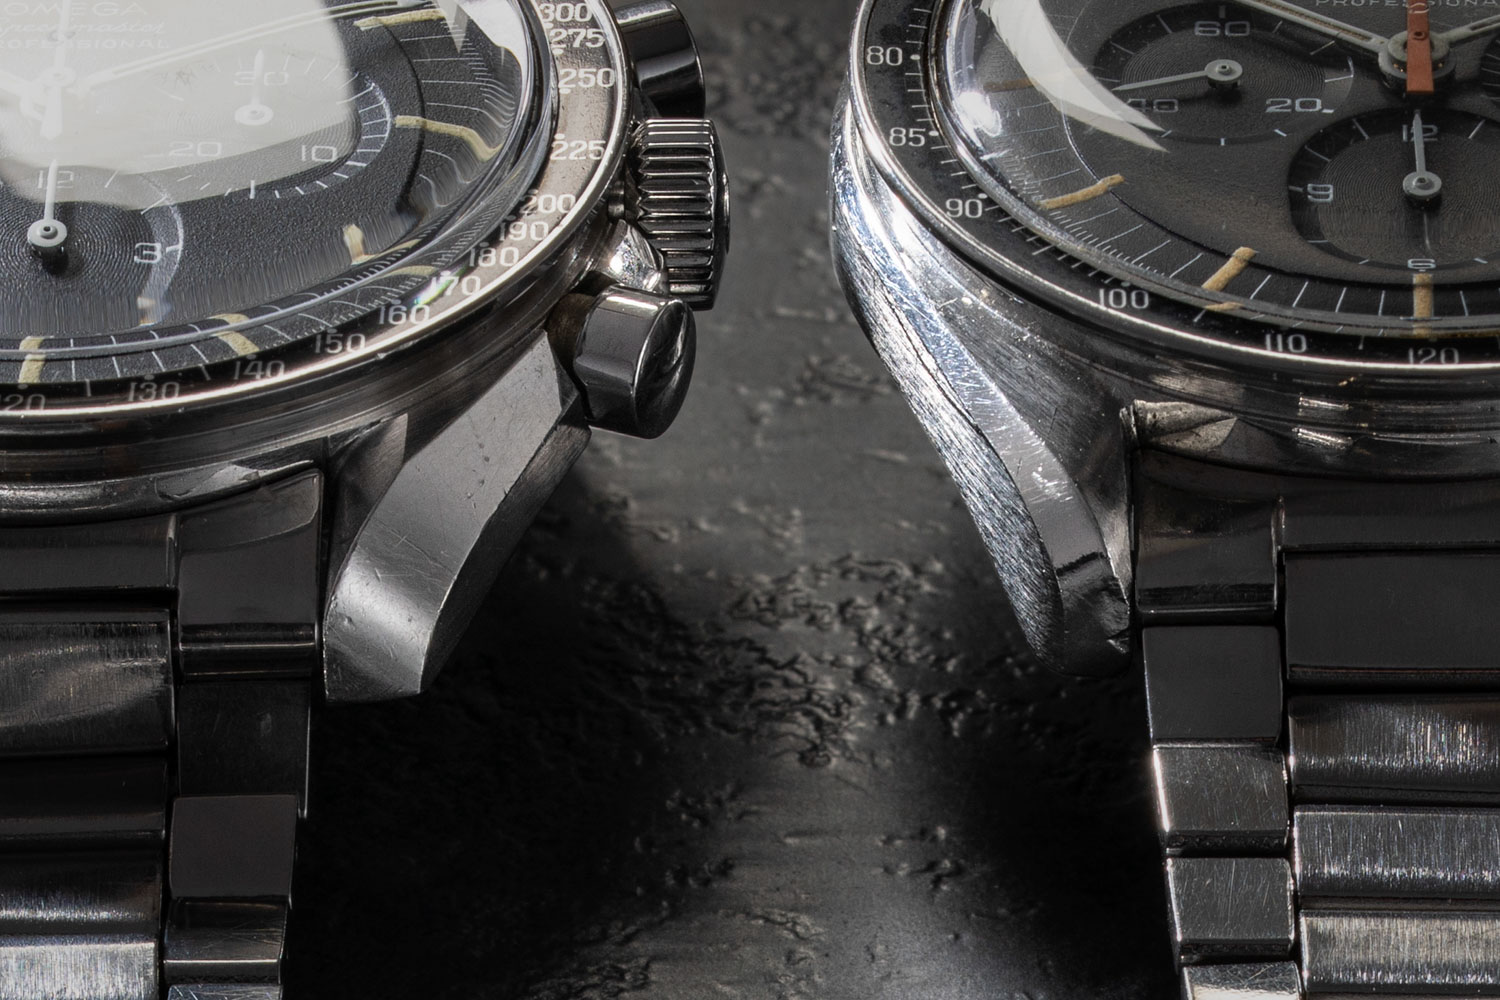 Here is a 145.012-67 case from an Ultraman Speedmaster (R) where you can clearly see the difference in bevels on the lugs of the ref. ST 105.012-66 (L) with a Le Centrale Boites case (©Revolution)